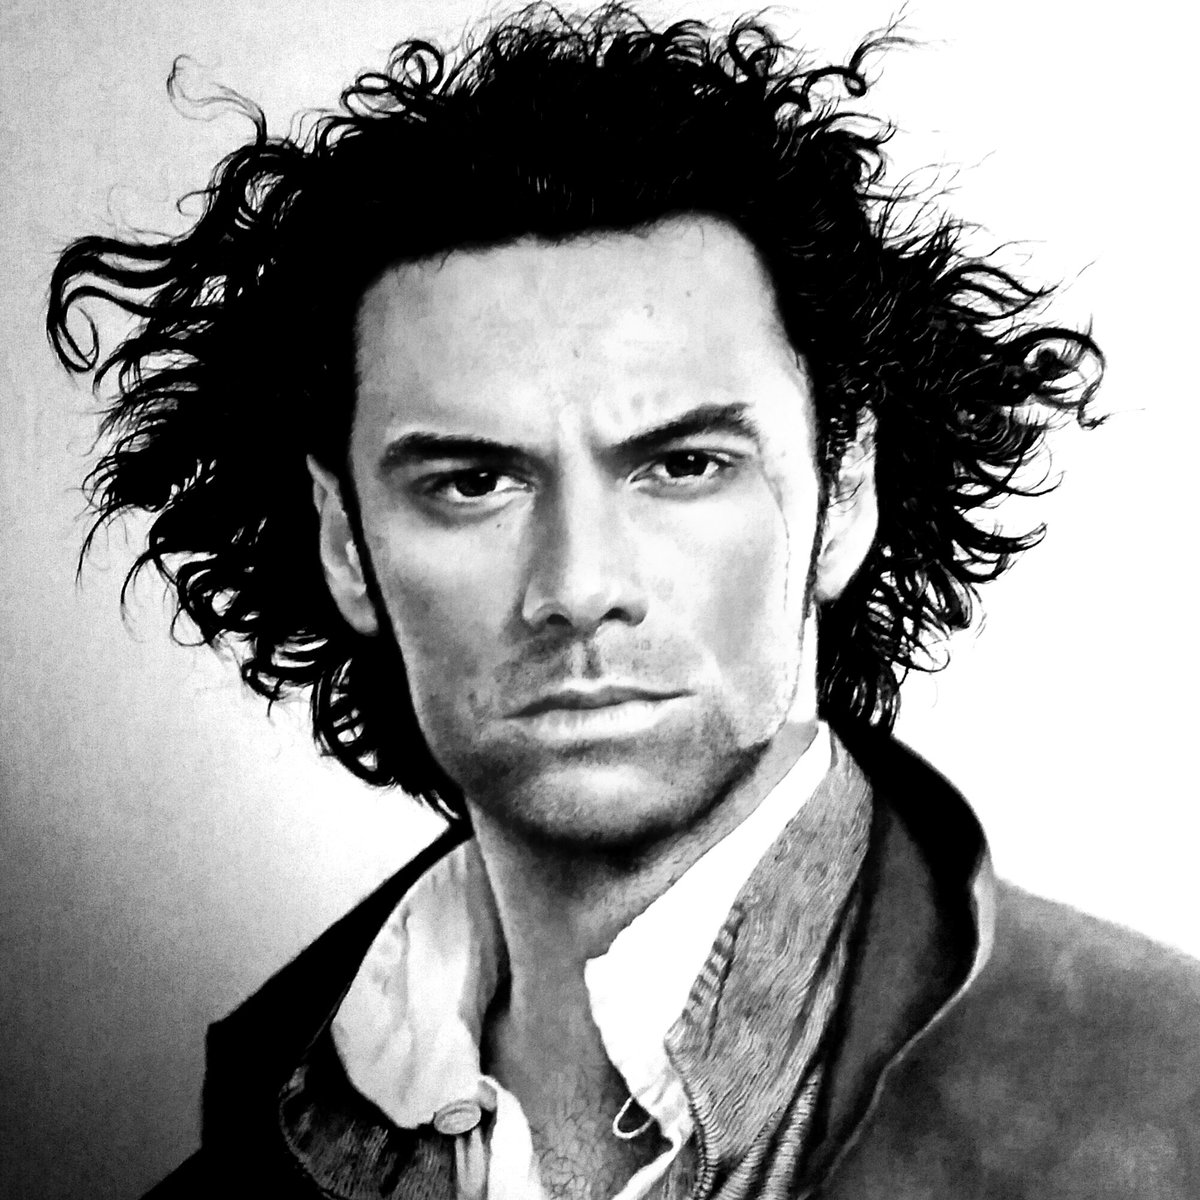 test Twitter Media - @Kate261271 This black & white version of my painting of of Aidan Turner is a little more dramatic than my original full colour oil portrait. #AidanTurner #portraits #portraitgallery #oiloncanvas https://t.co/DS6IRaEouB